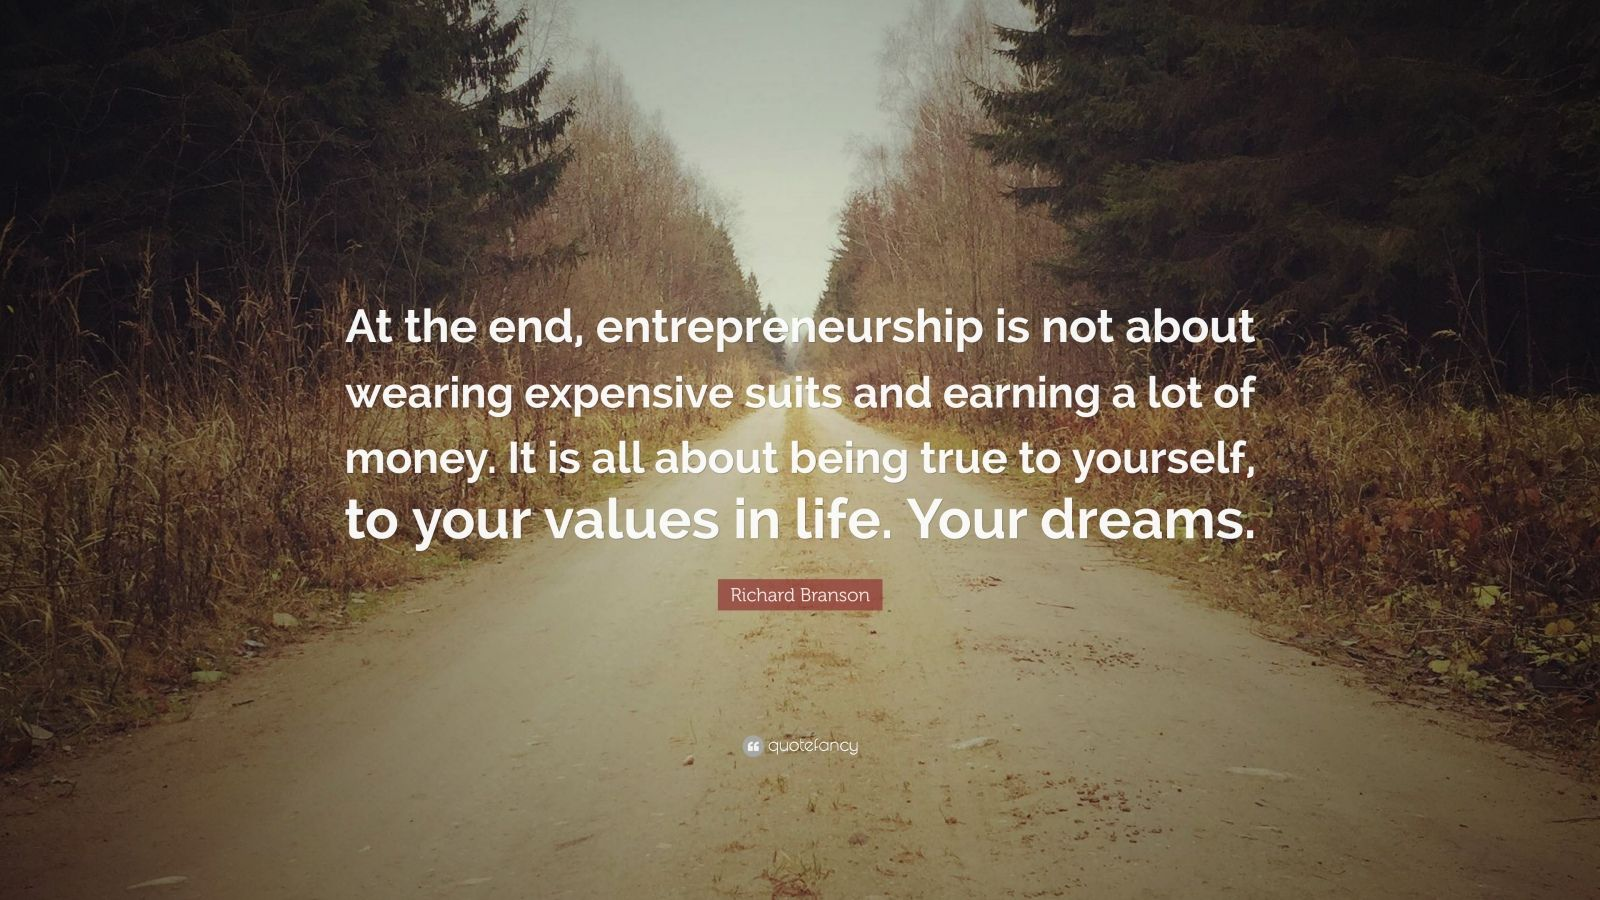 """Richard Branson Quote: """"At the end, entrepreneurship is not about wearing expensive suits and earning a lot of money. It is all about being true to yourself, to your values in life. Your dreams."""""""